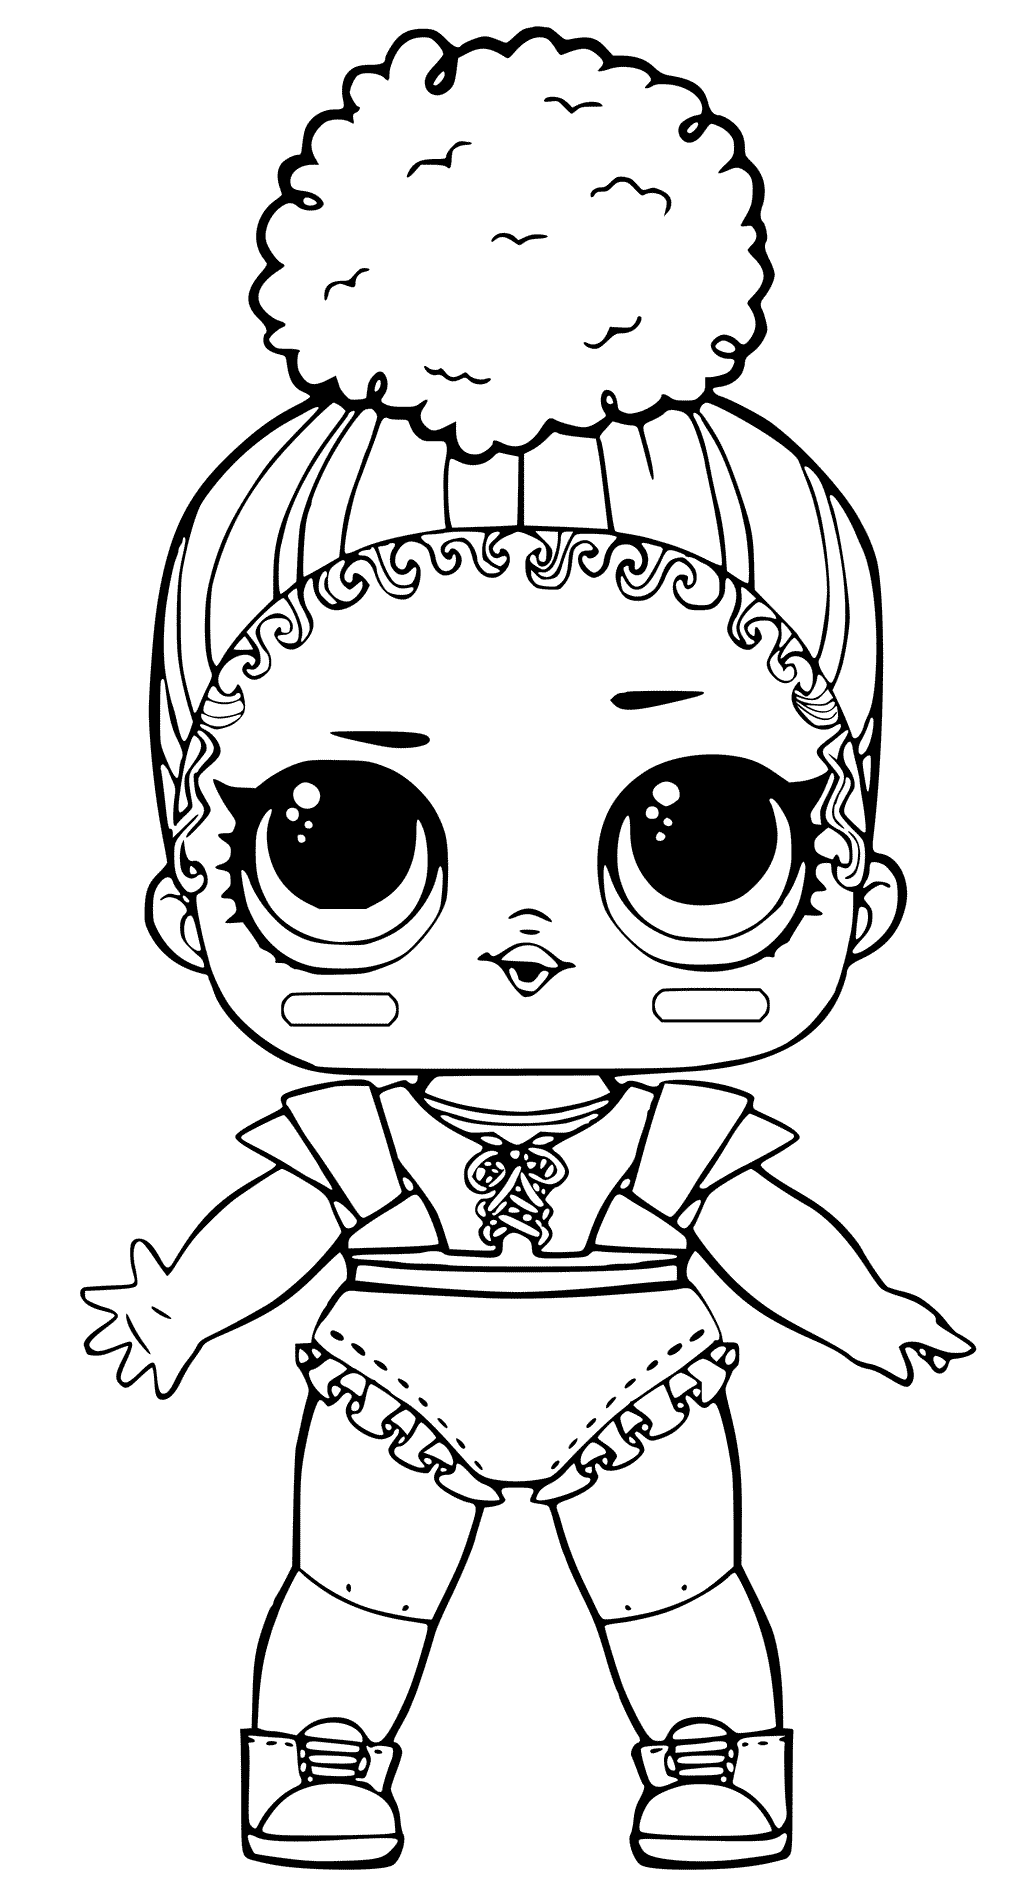 Lol Doll Coloring Pages Coloring Rocks Unicorn Coloring Pages Baby Coloring Pages Cute Coloring Pages